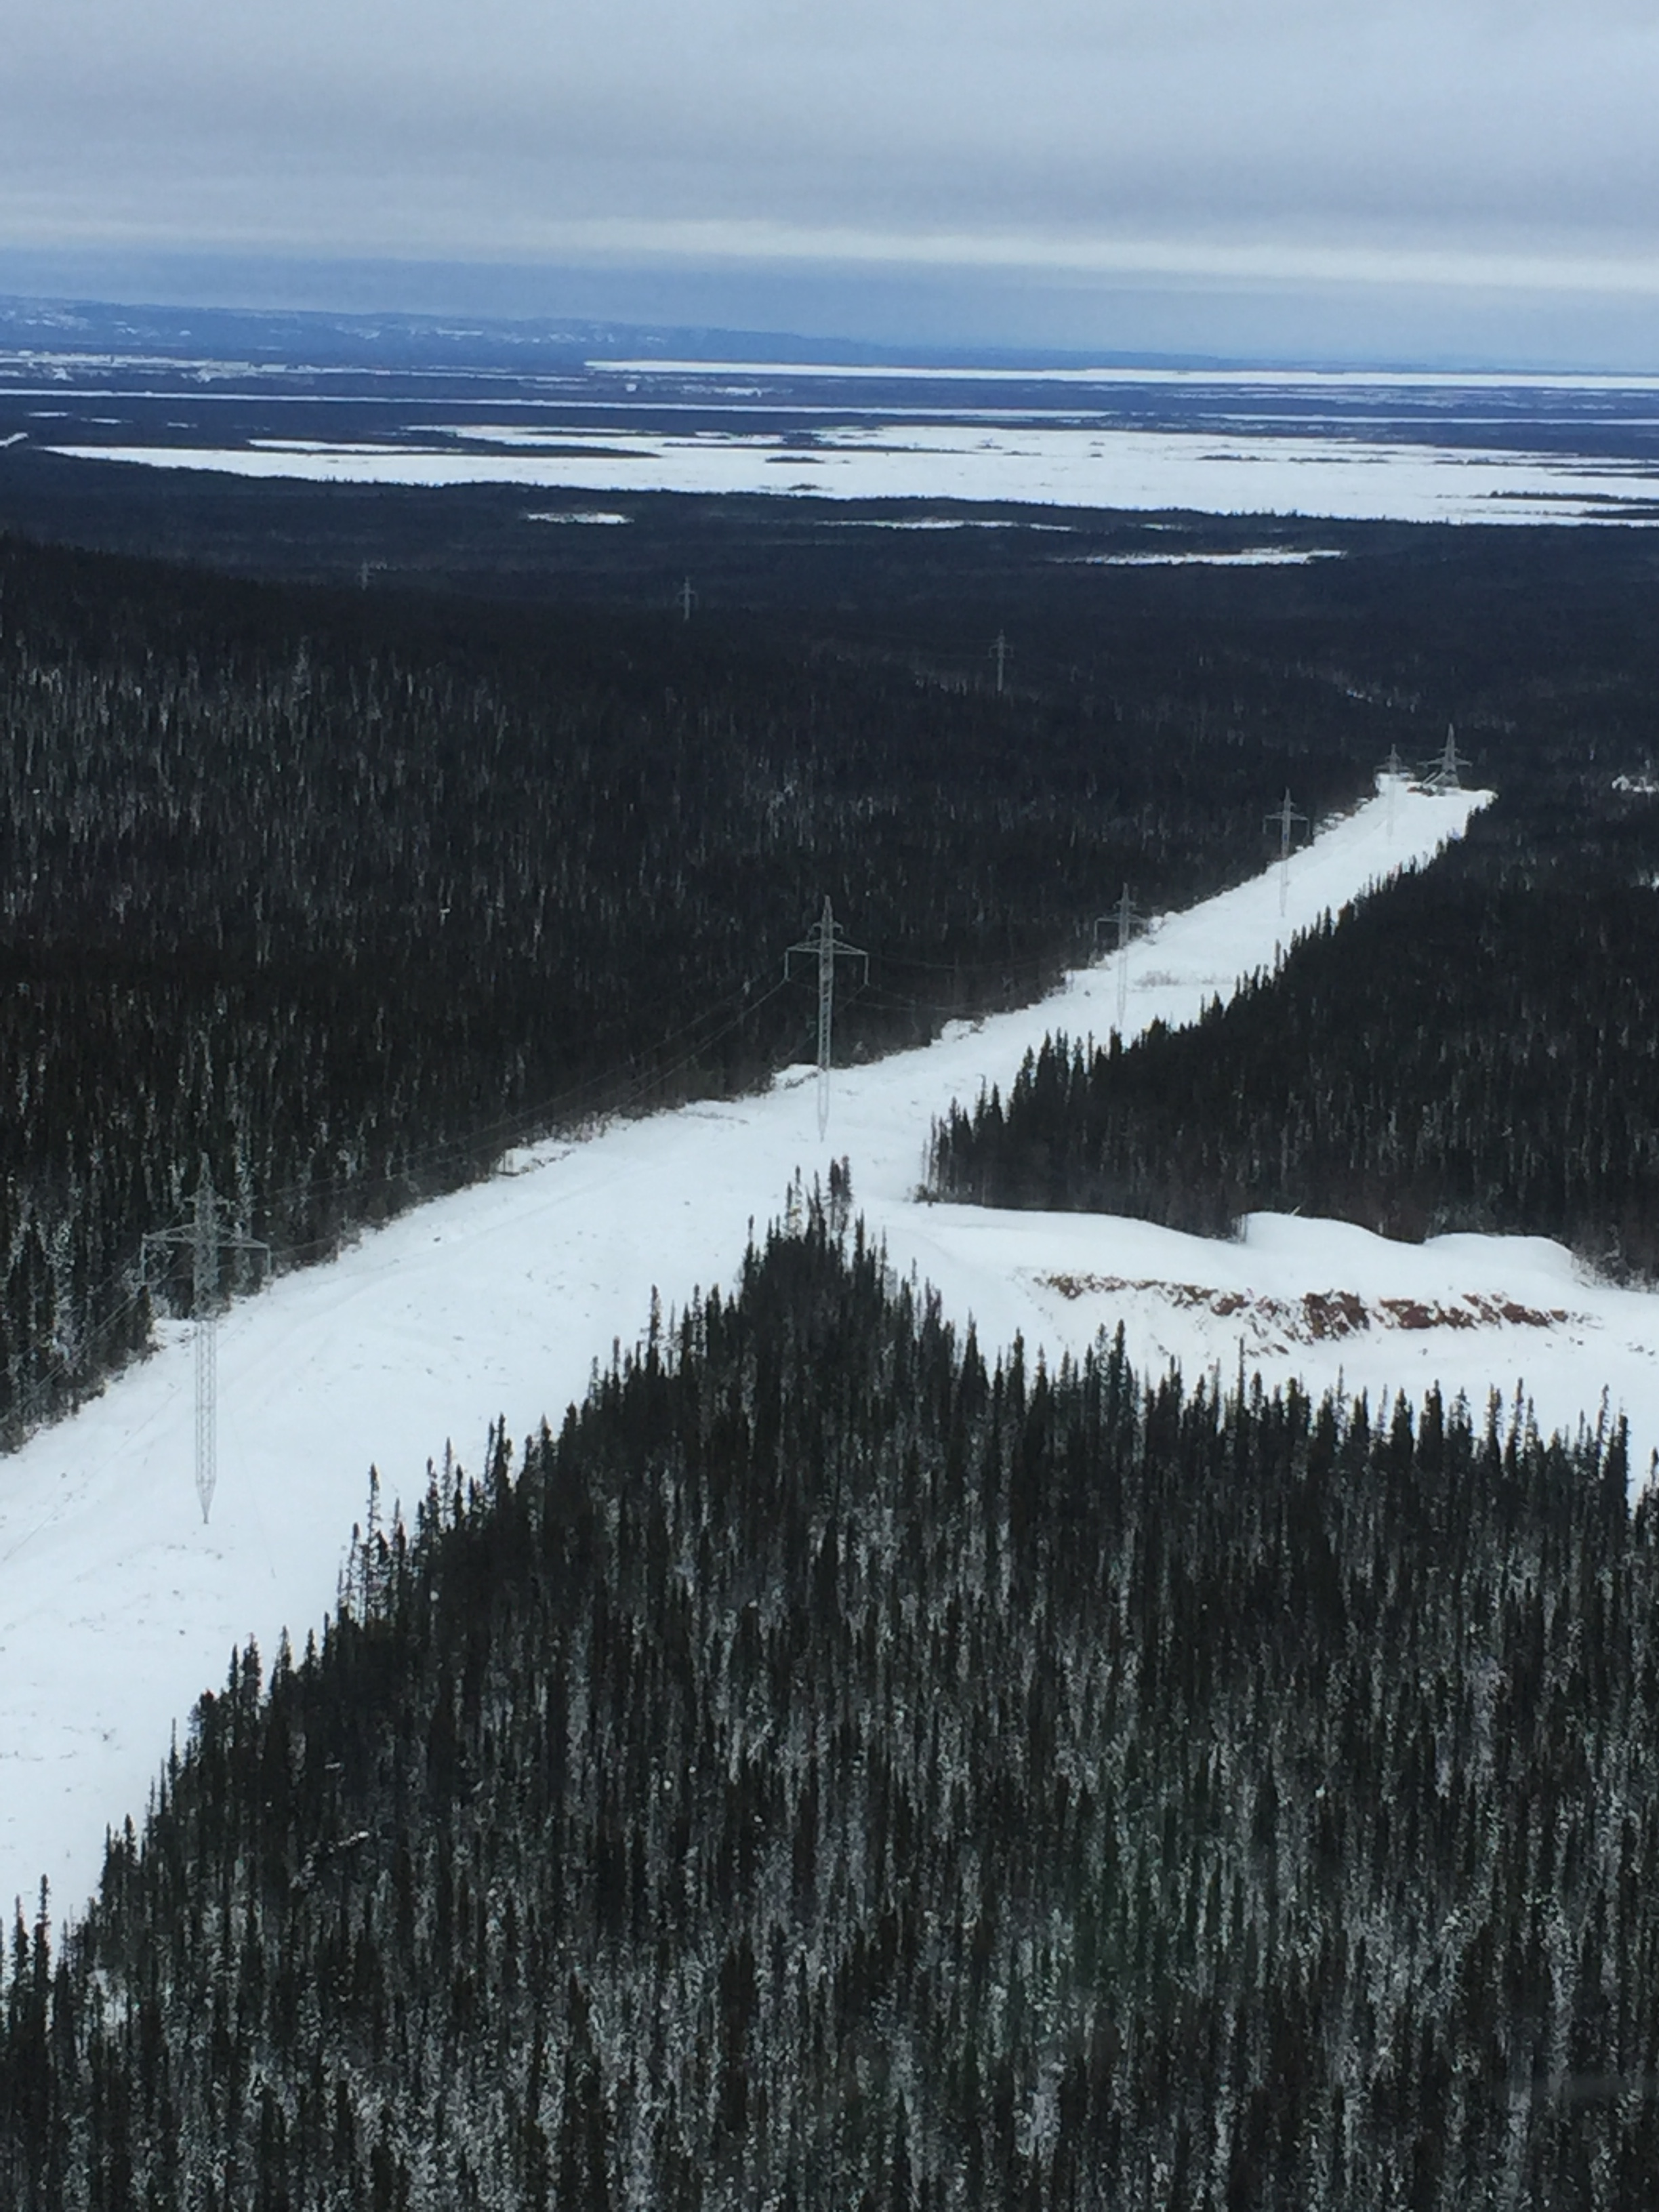 Construction of the Labrador-Island Link south of Muskrat Falls, Labrador